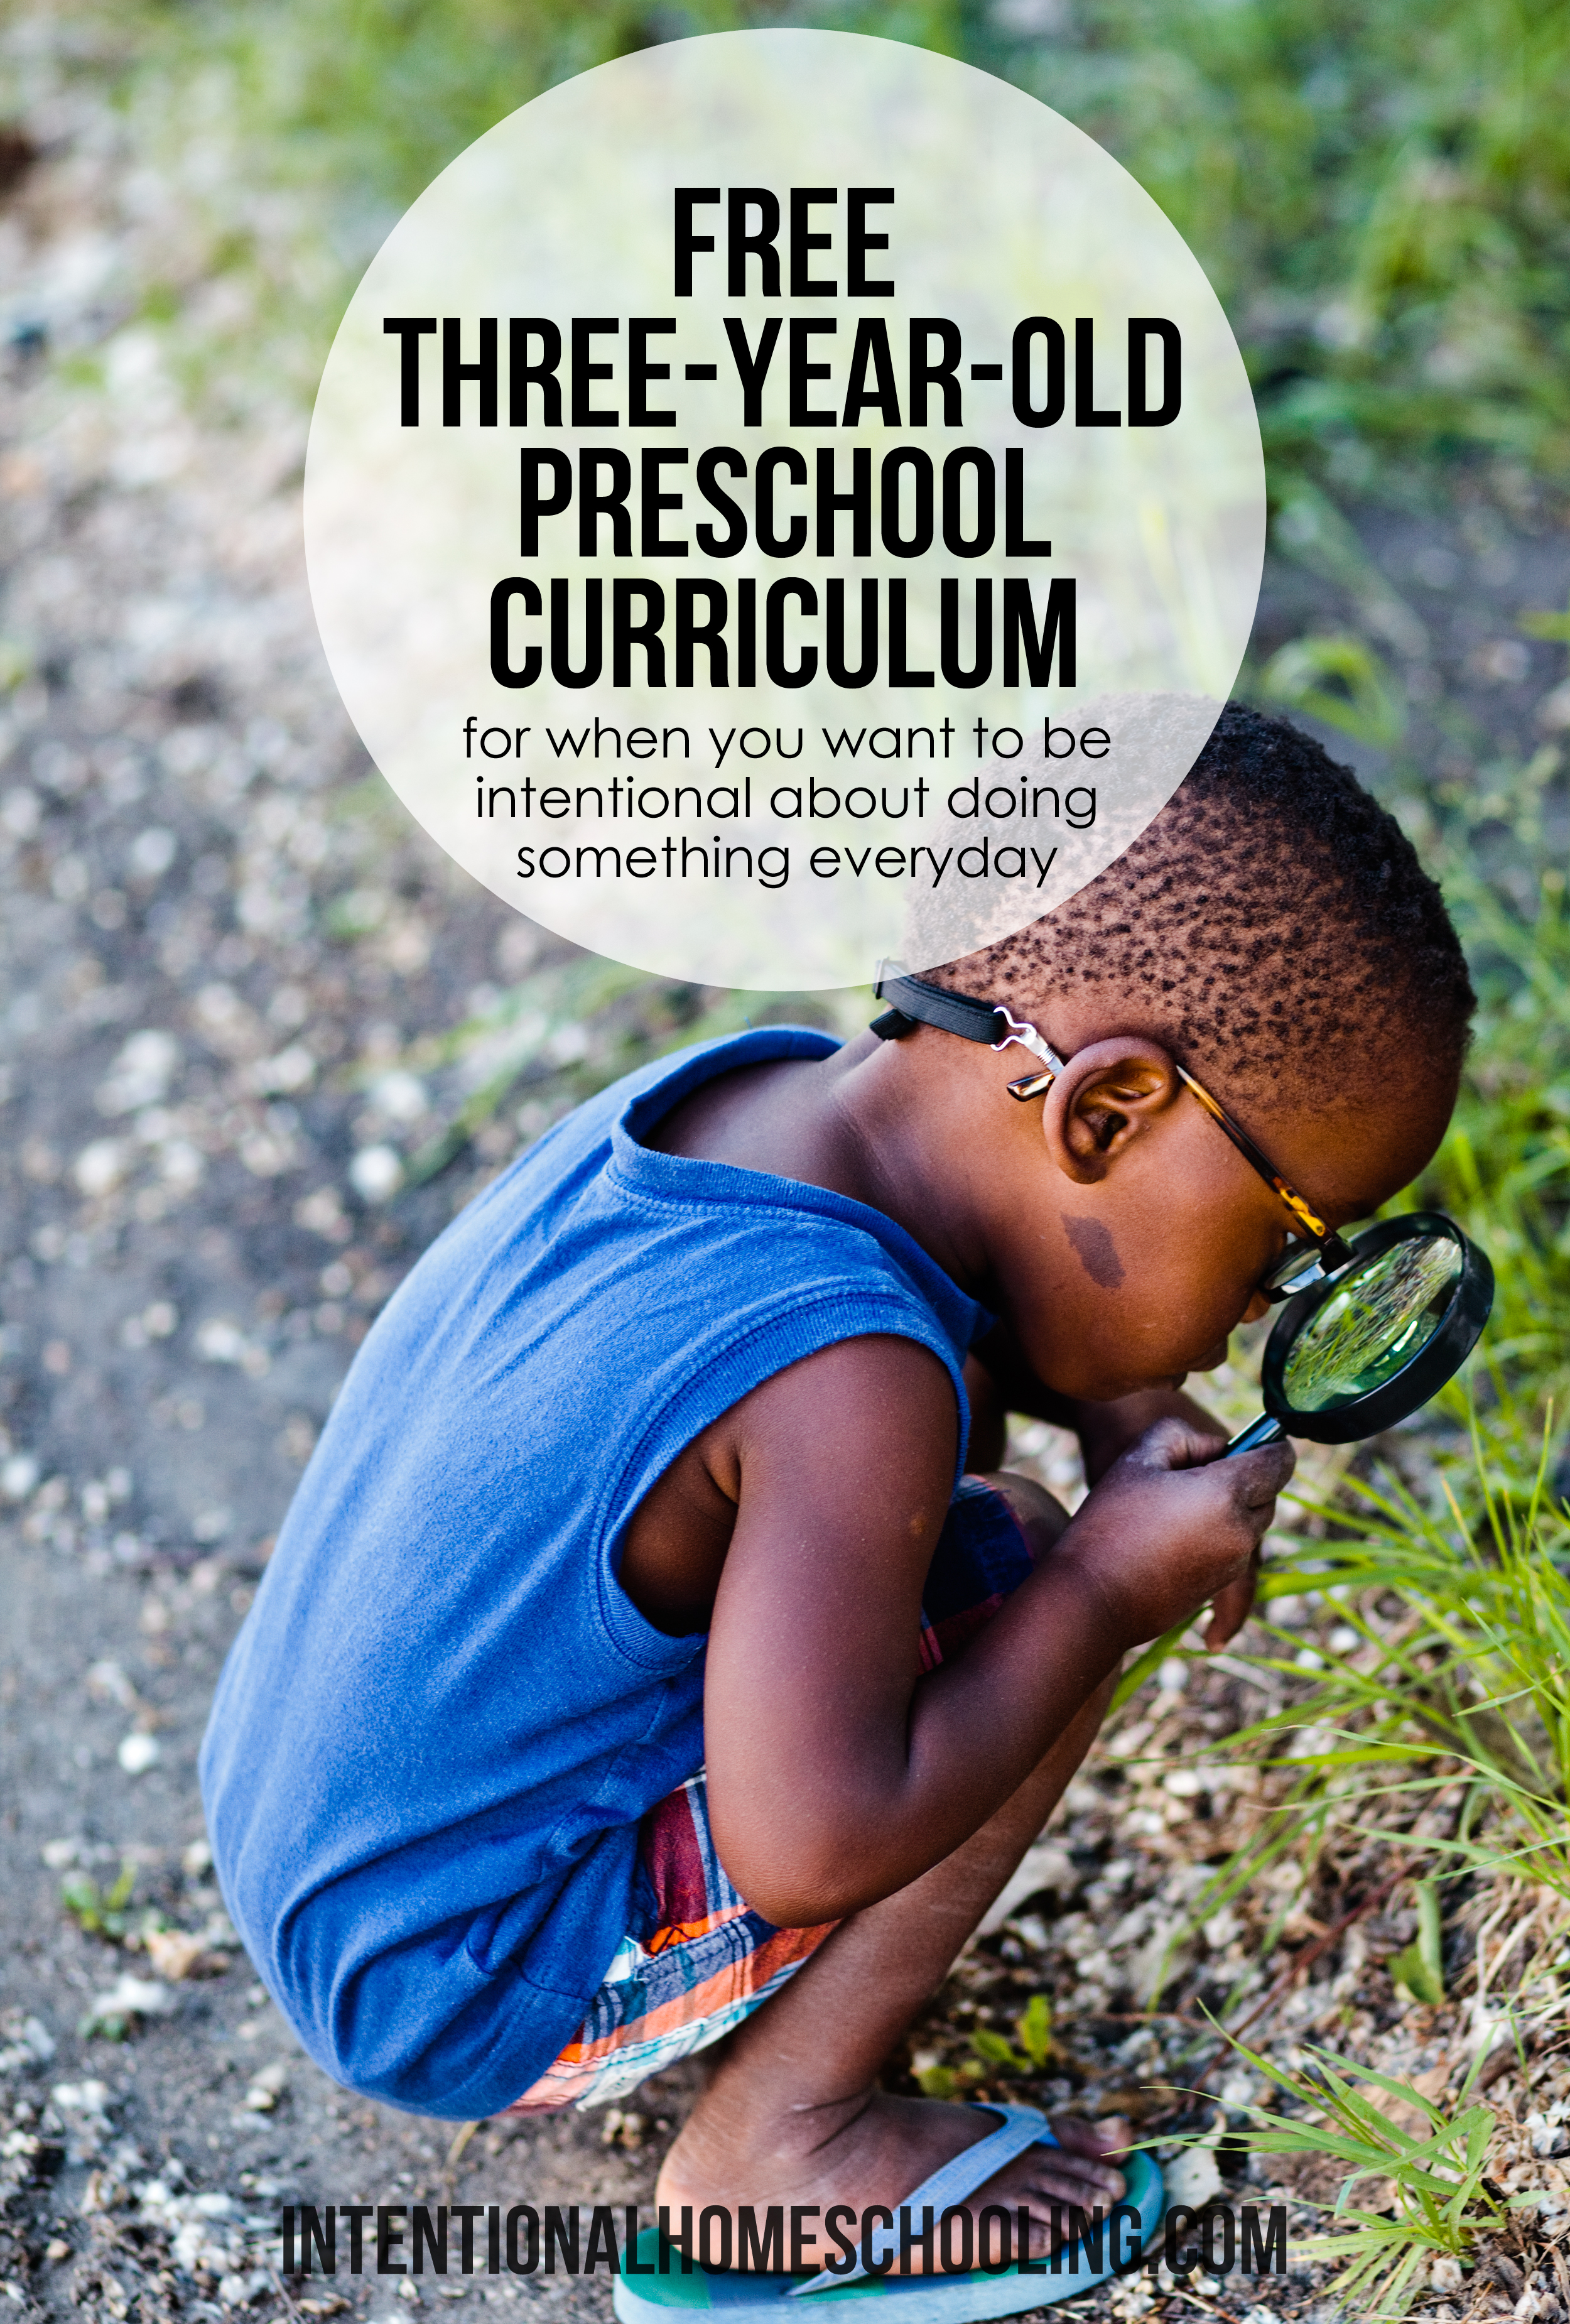 Free 3-Year-Old Preschool Curriculum - perfect for intentional preschool when you want something small to do each day.